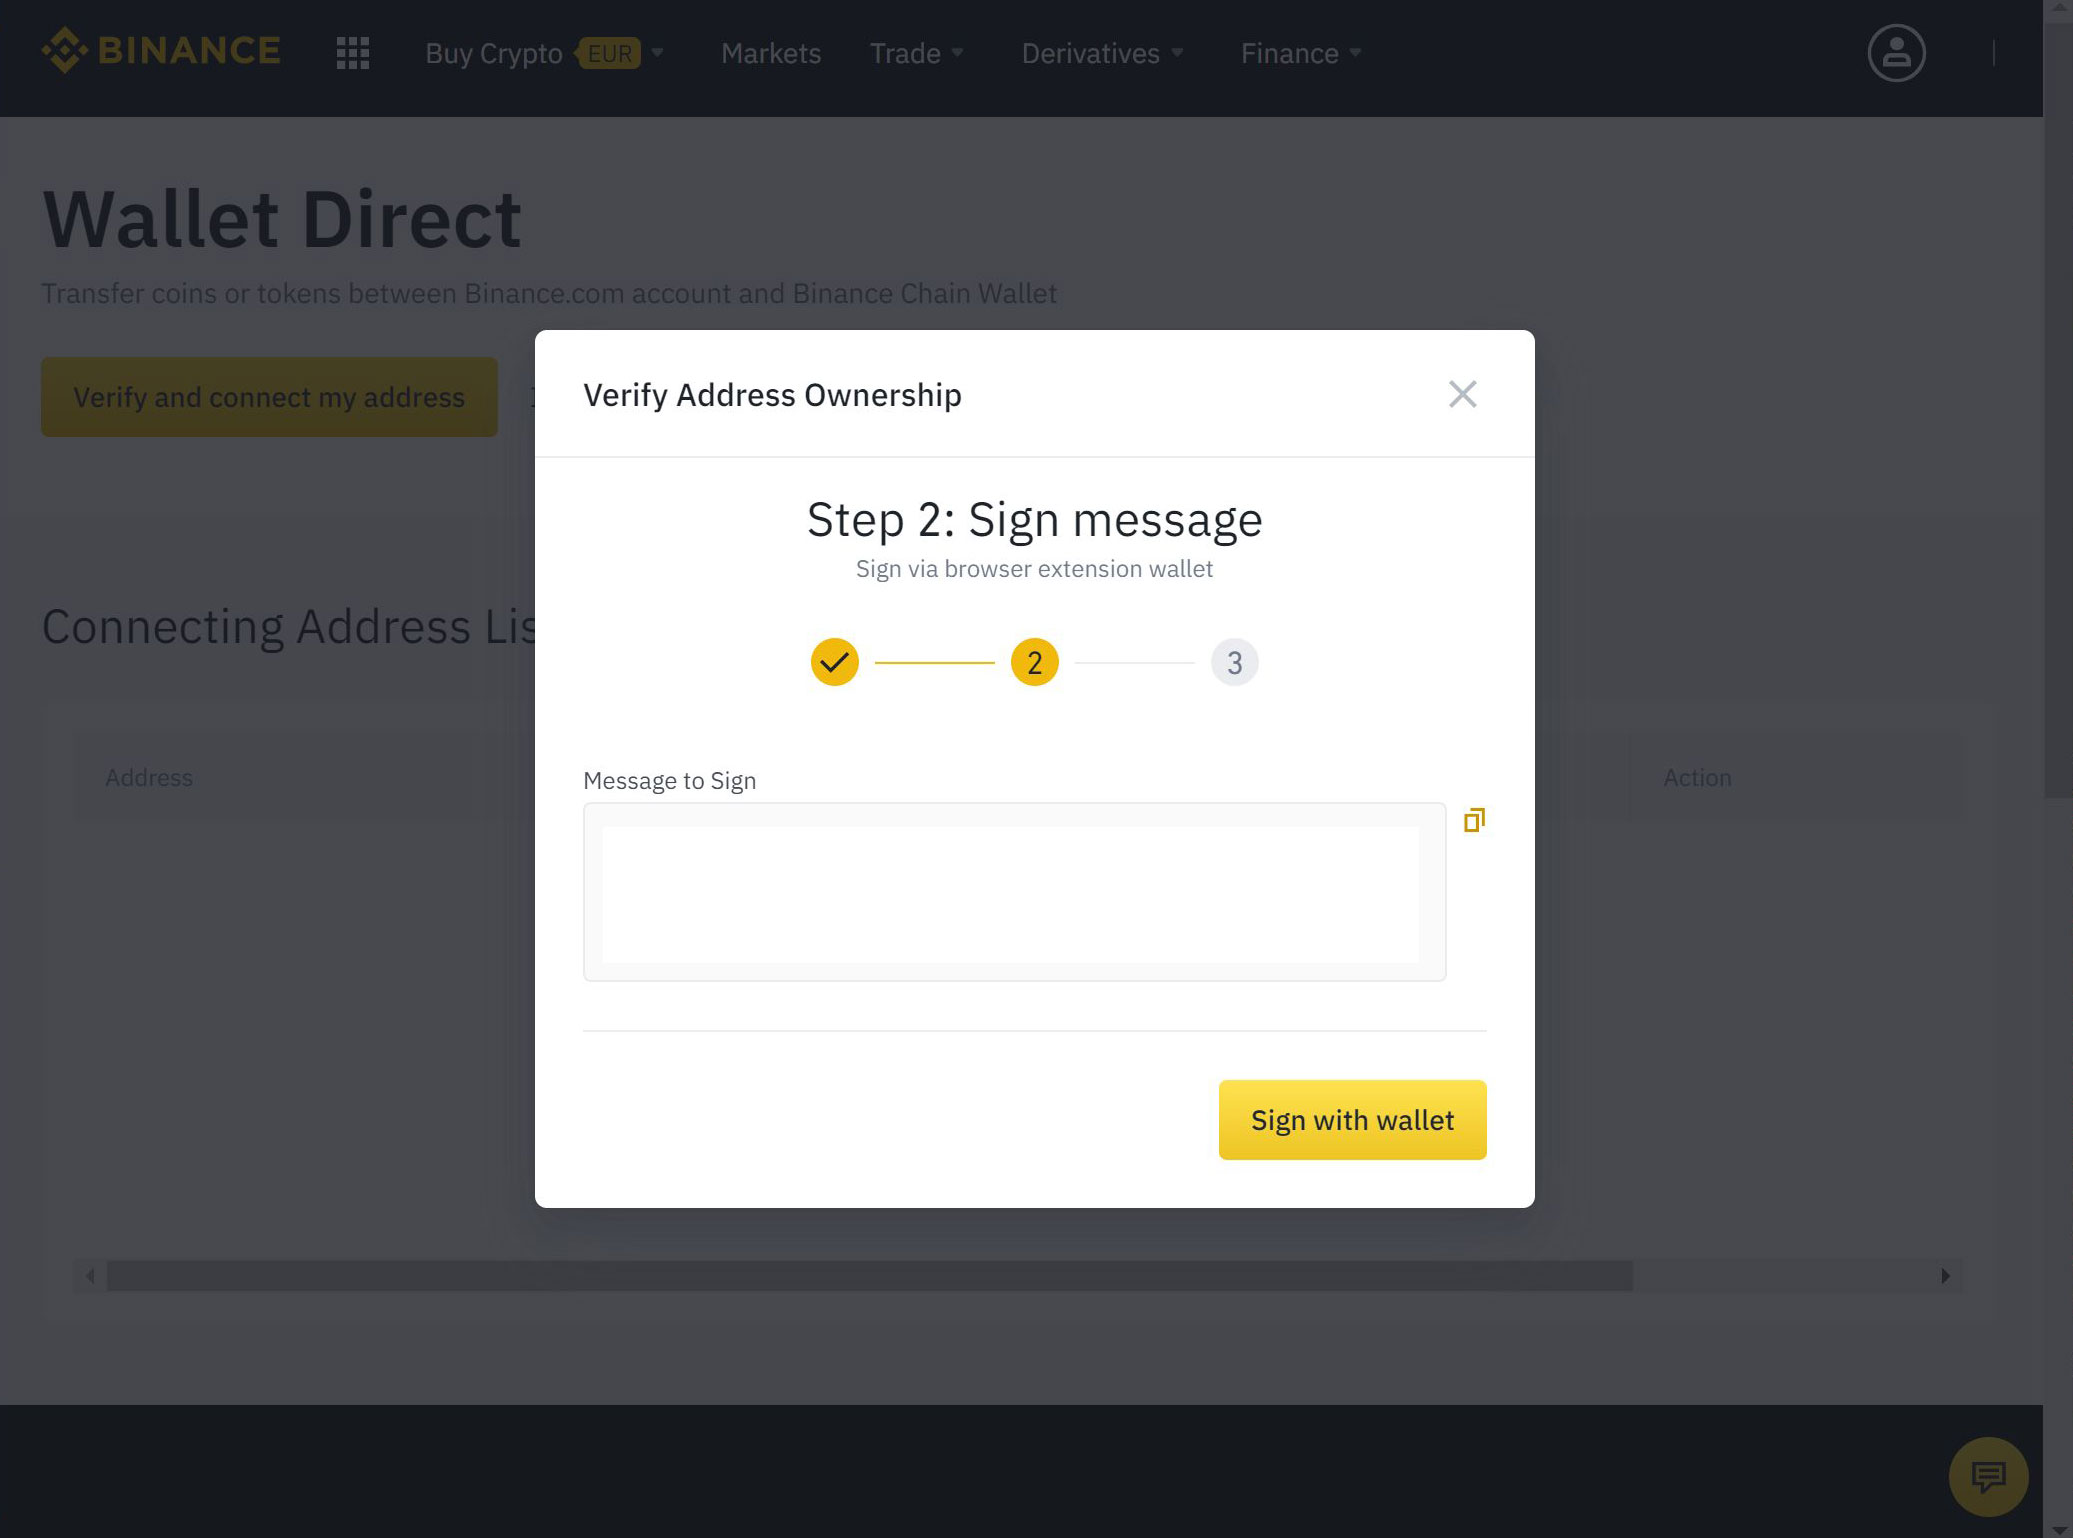 Binance chain wallet sign with wallet